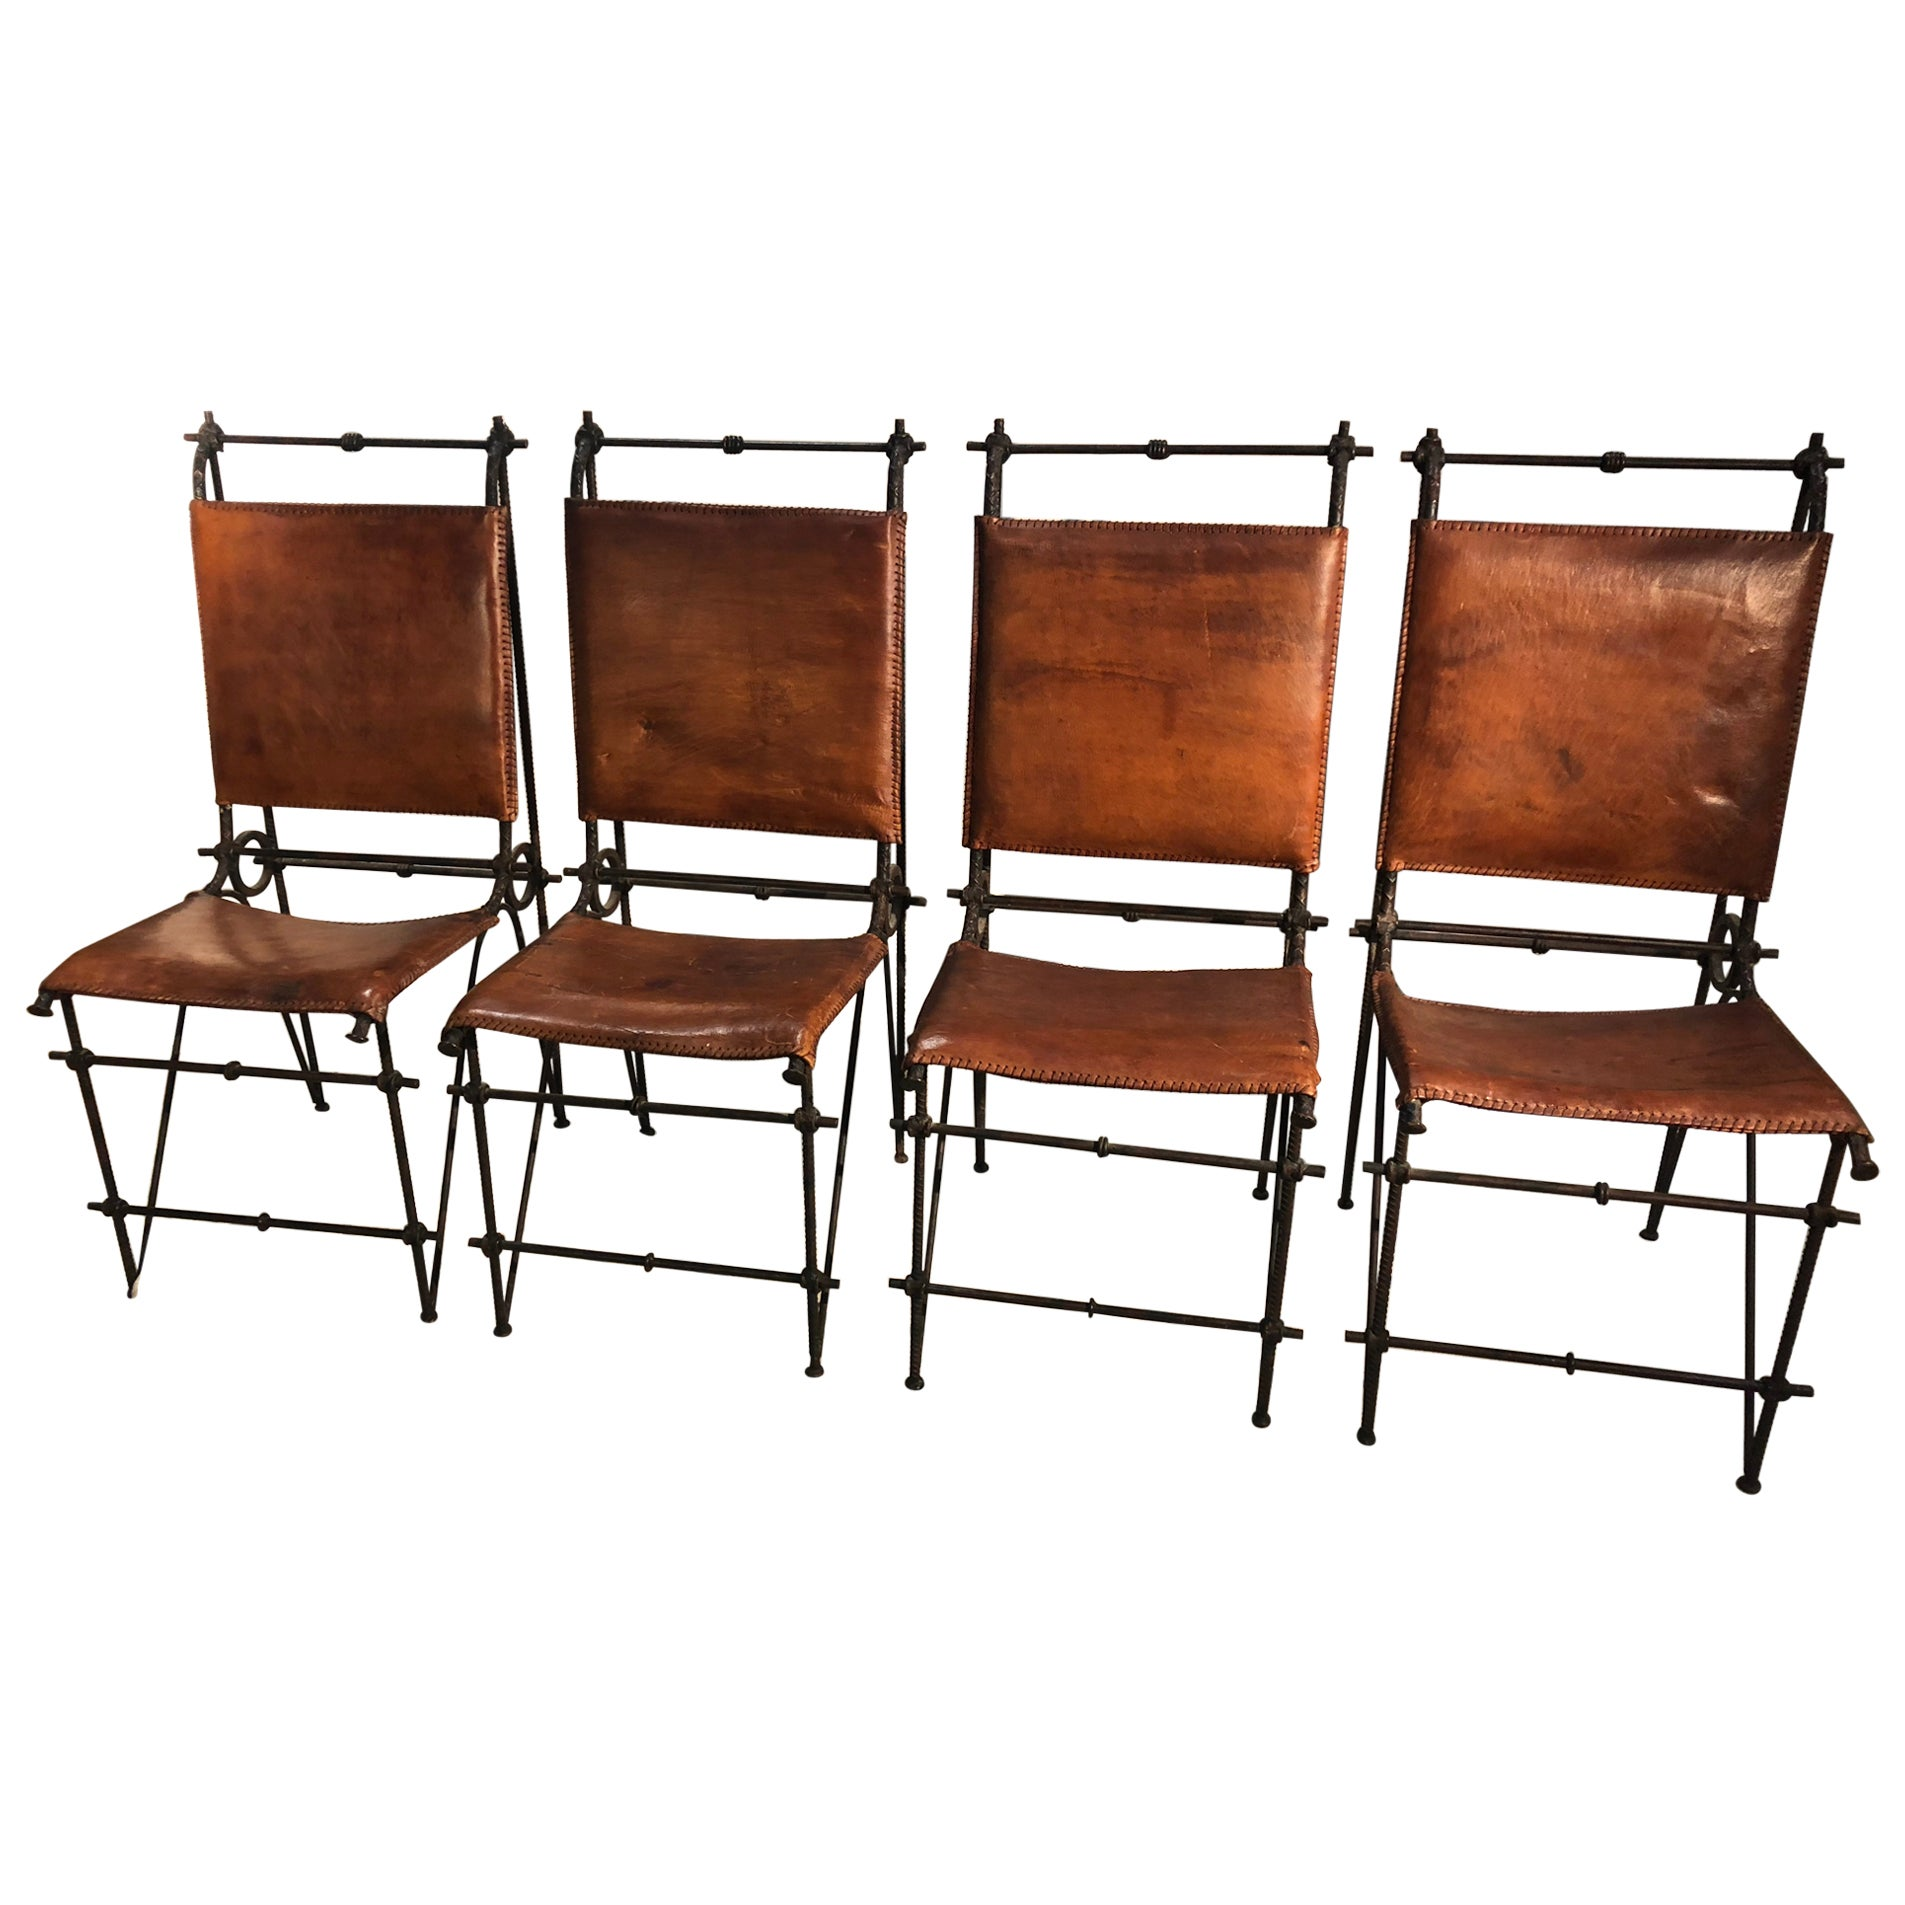 Set of 4 Ilana Goor 'Attributed' Dining Chairs, 1980s